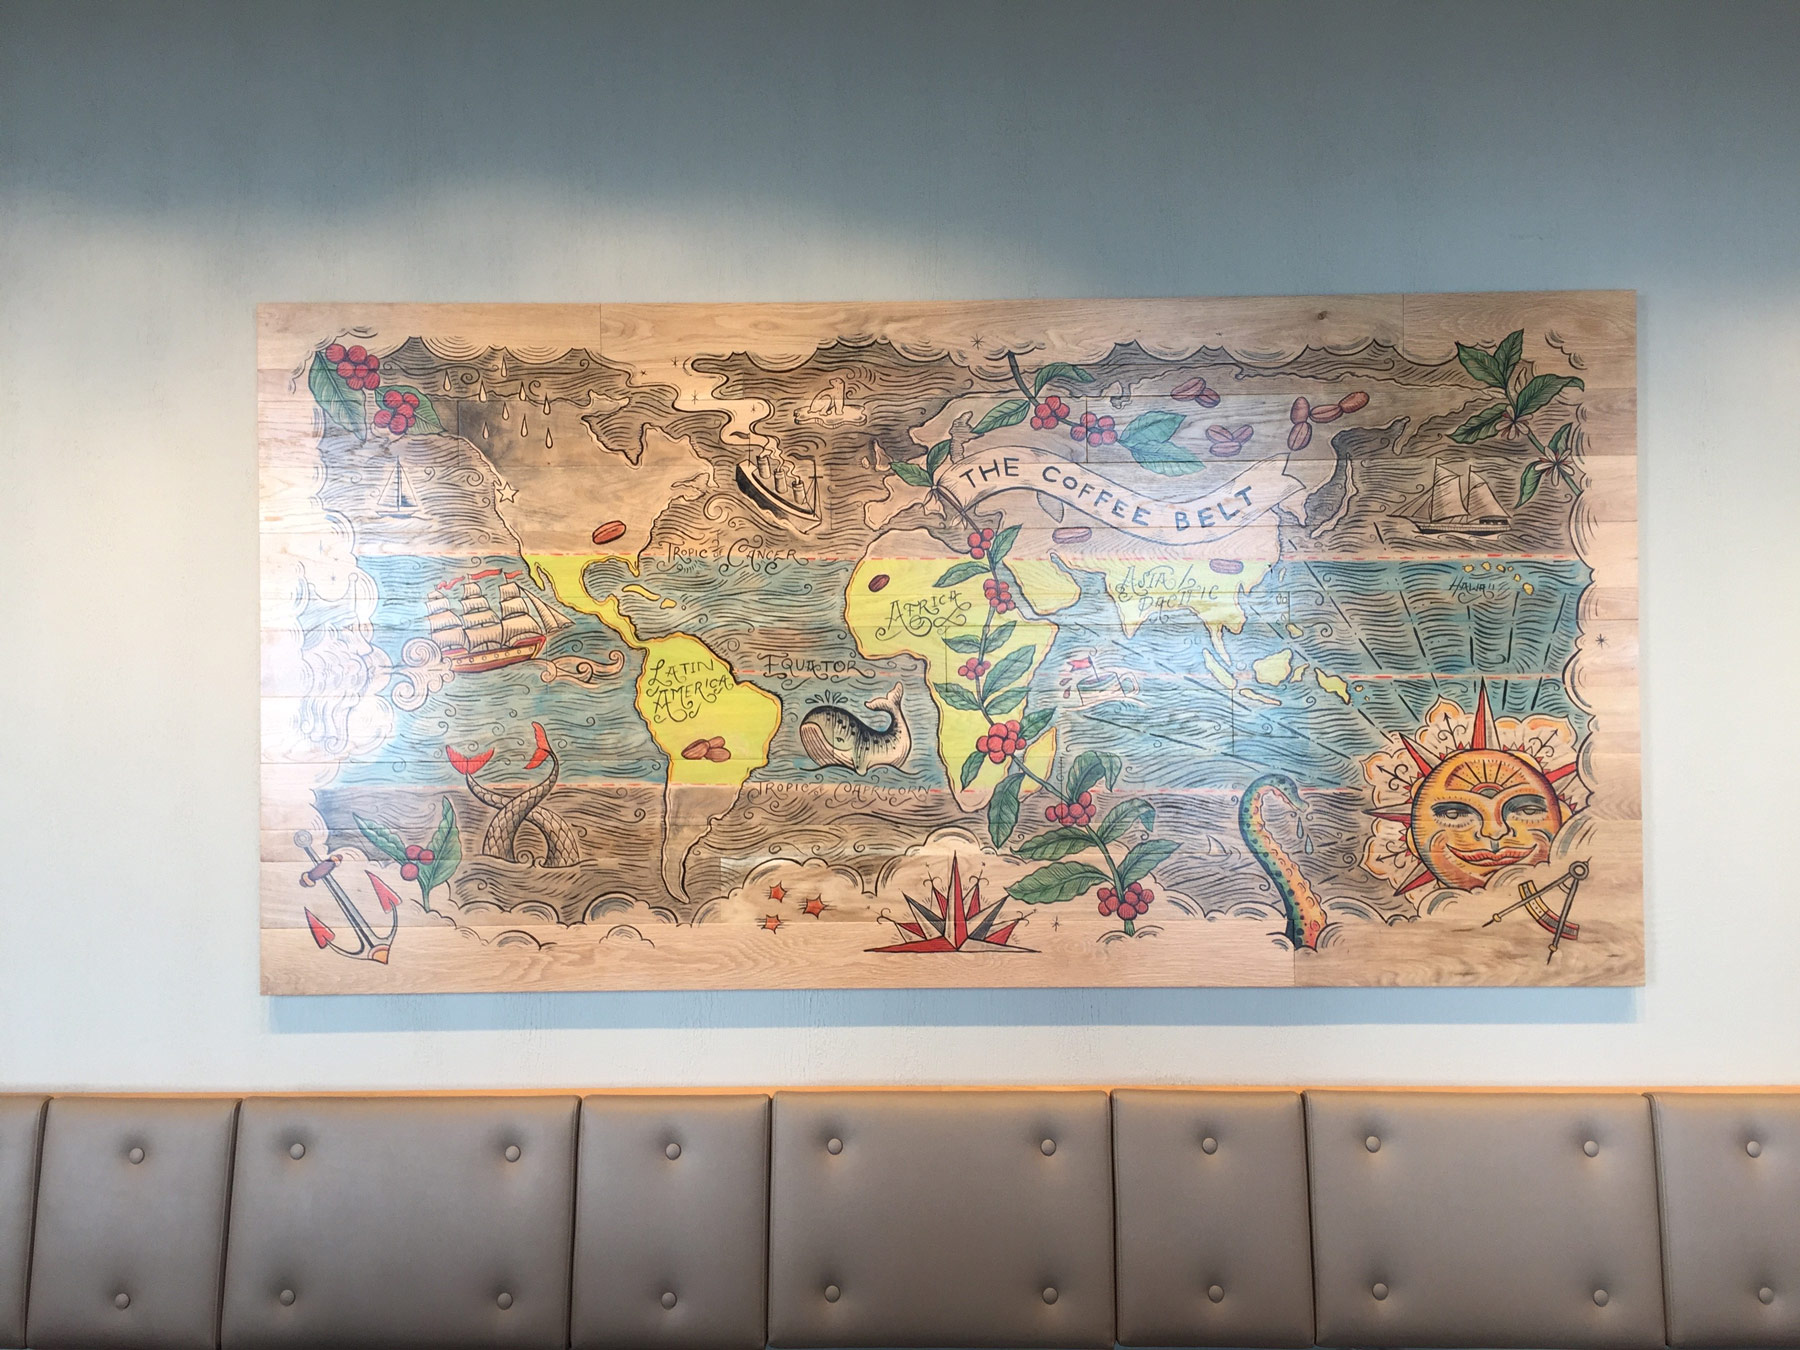 the-art-of-wall-starbucks-manly-mural-map-coffee-belt-small